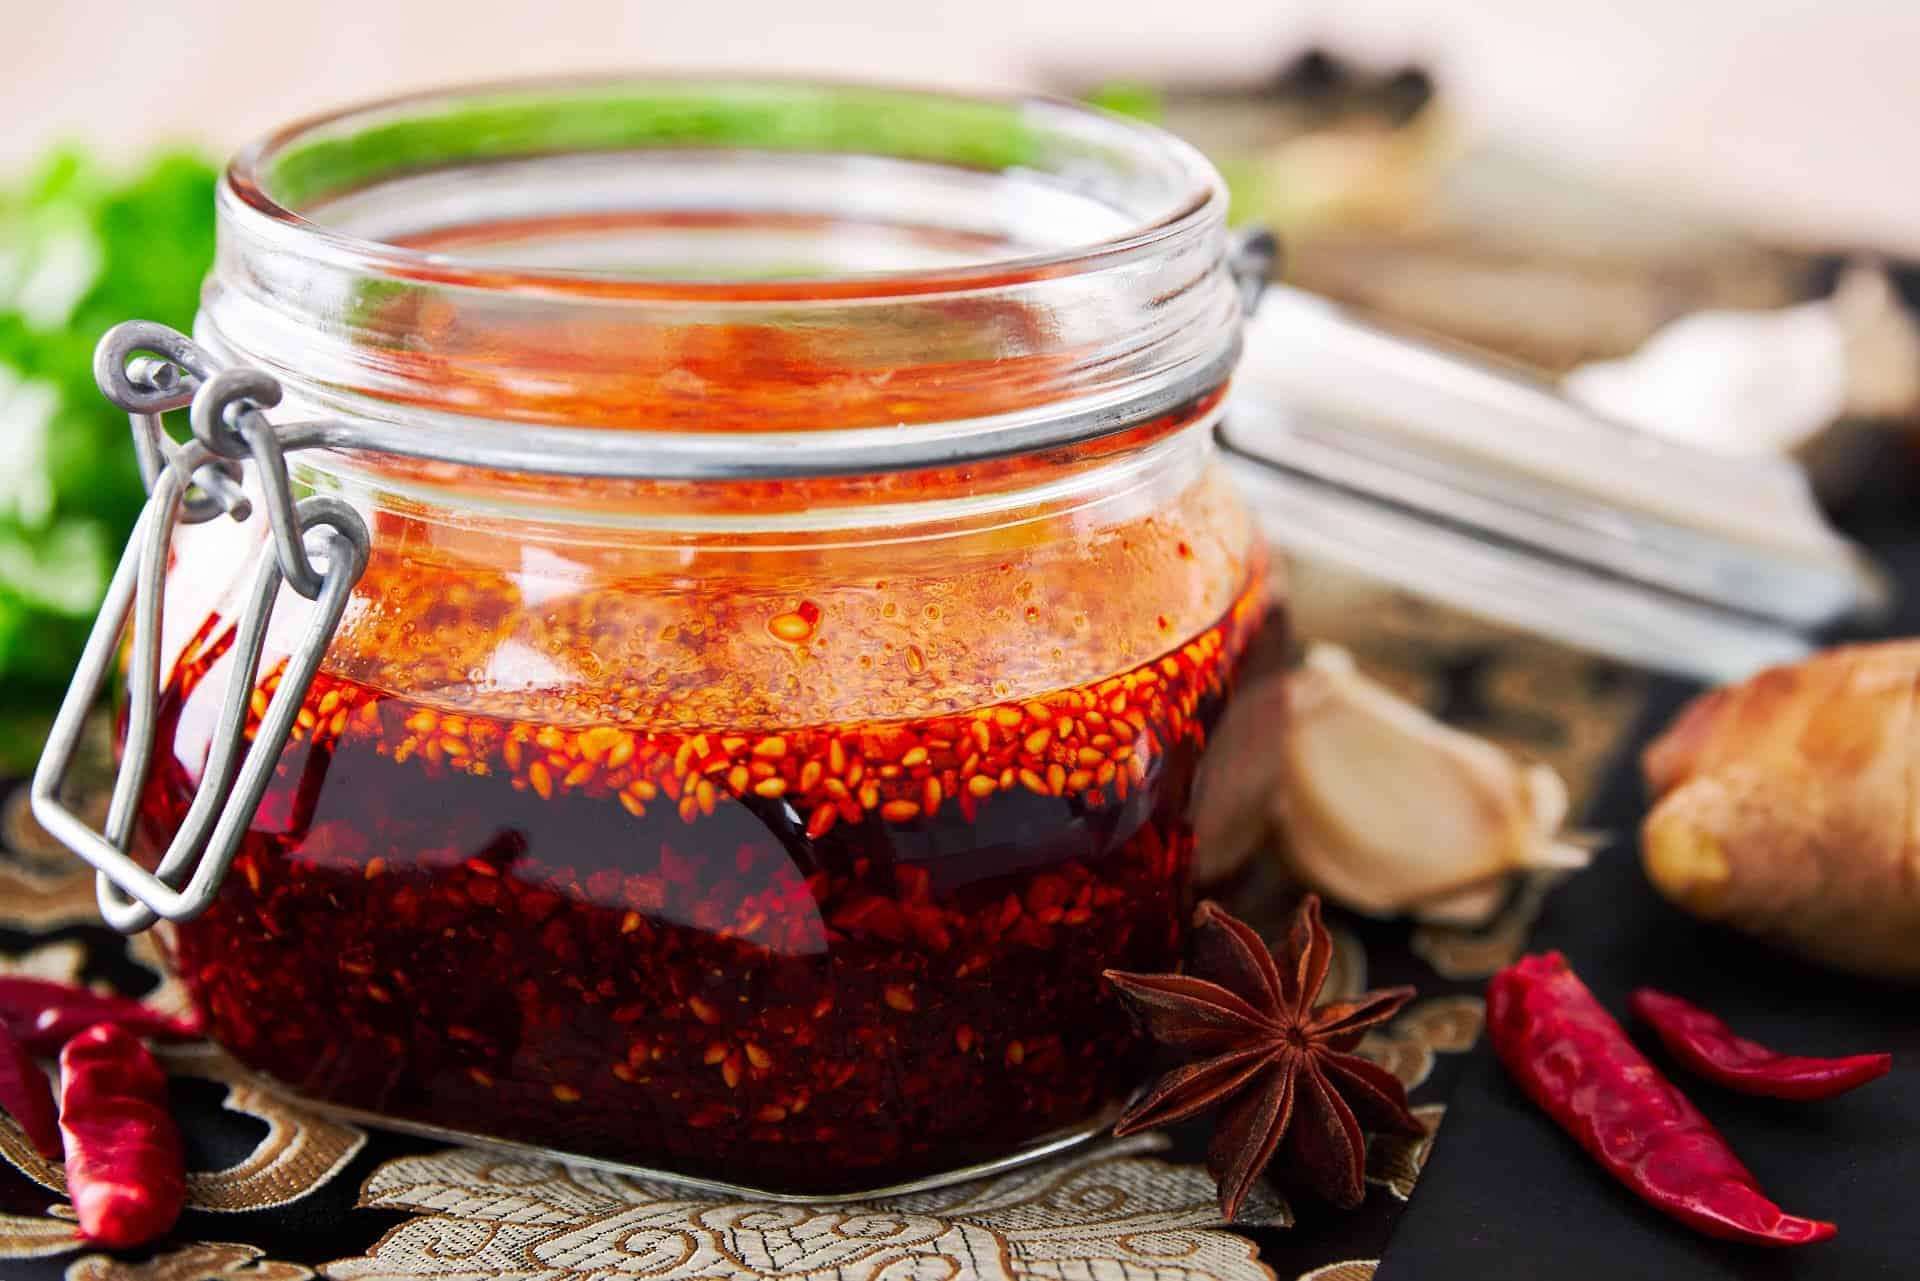 With crispy, garlic, sesame seeds and chili flakes, this delicious Chinese chili oil is a delightful condiment that's good on everything from hashbrowns to noodle soup.